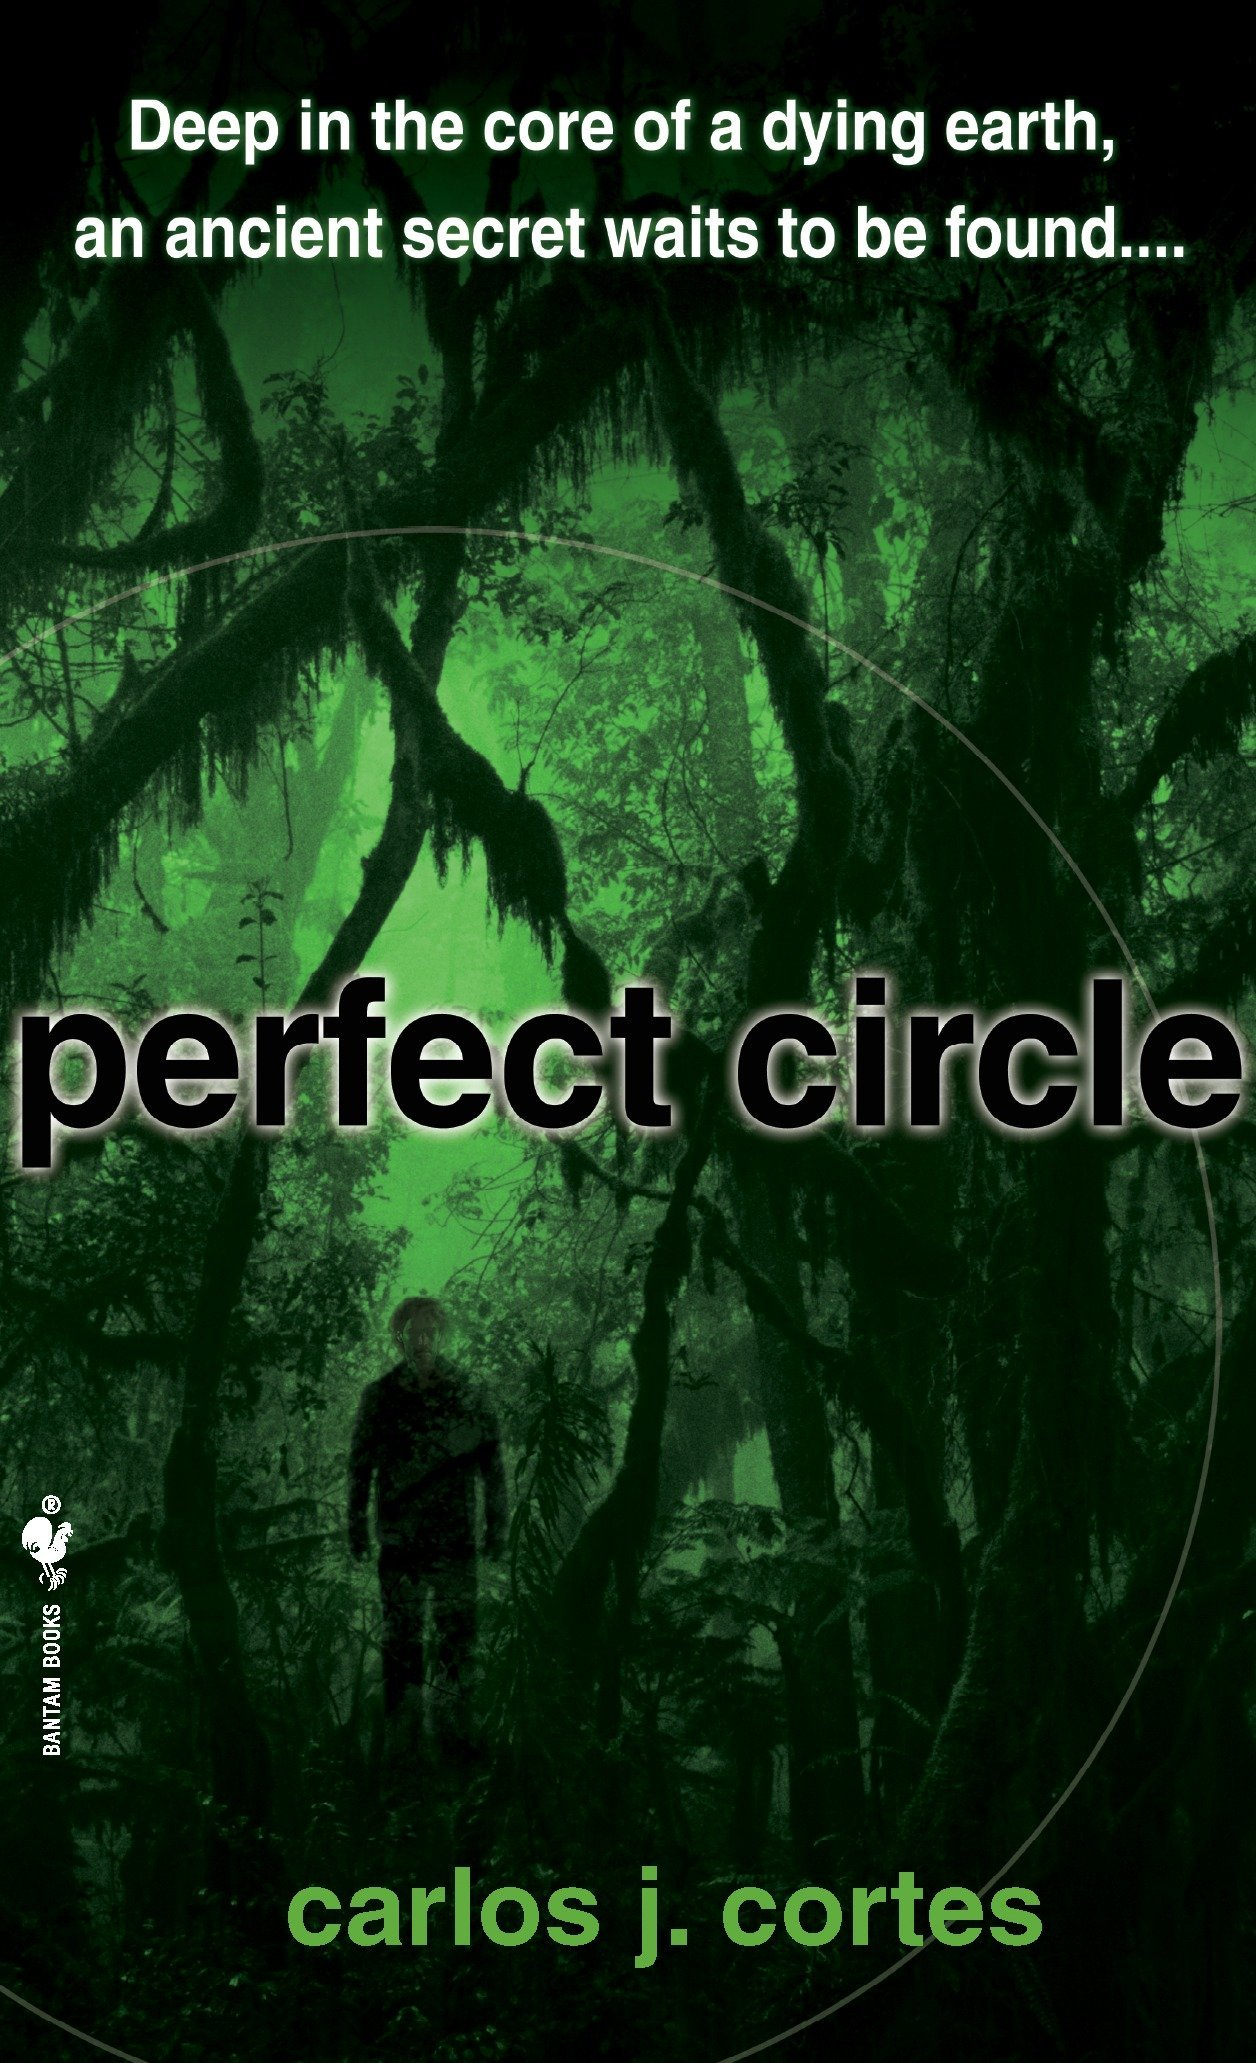 Amazon.com: Perfect Circle: A Novel (9780553591620): Carlos ...